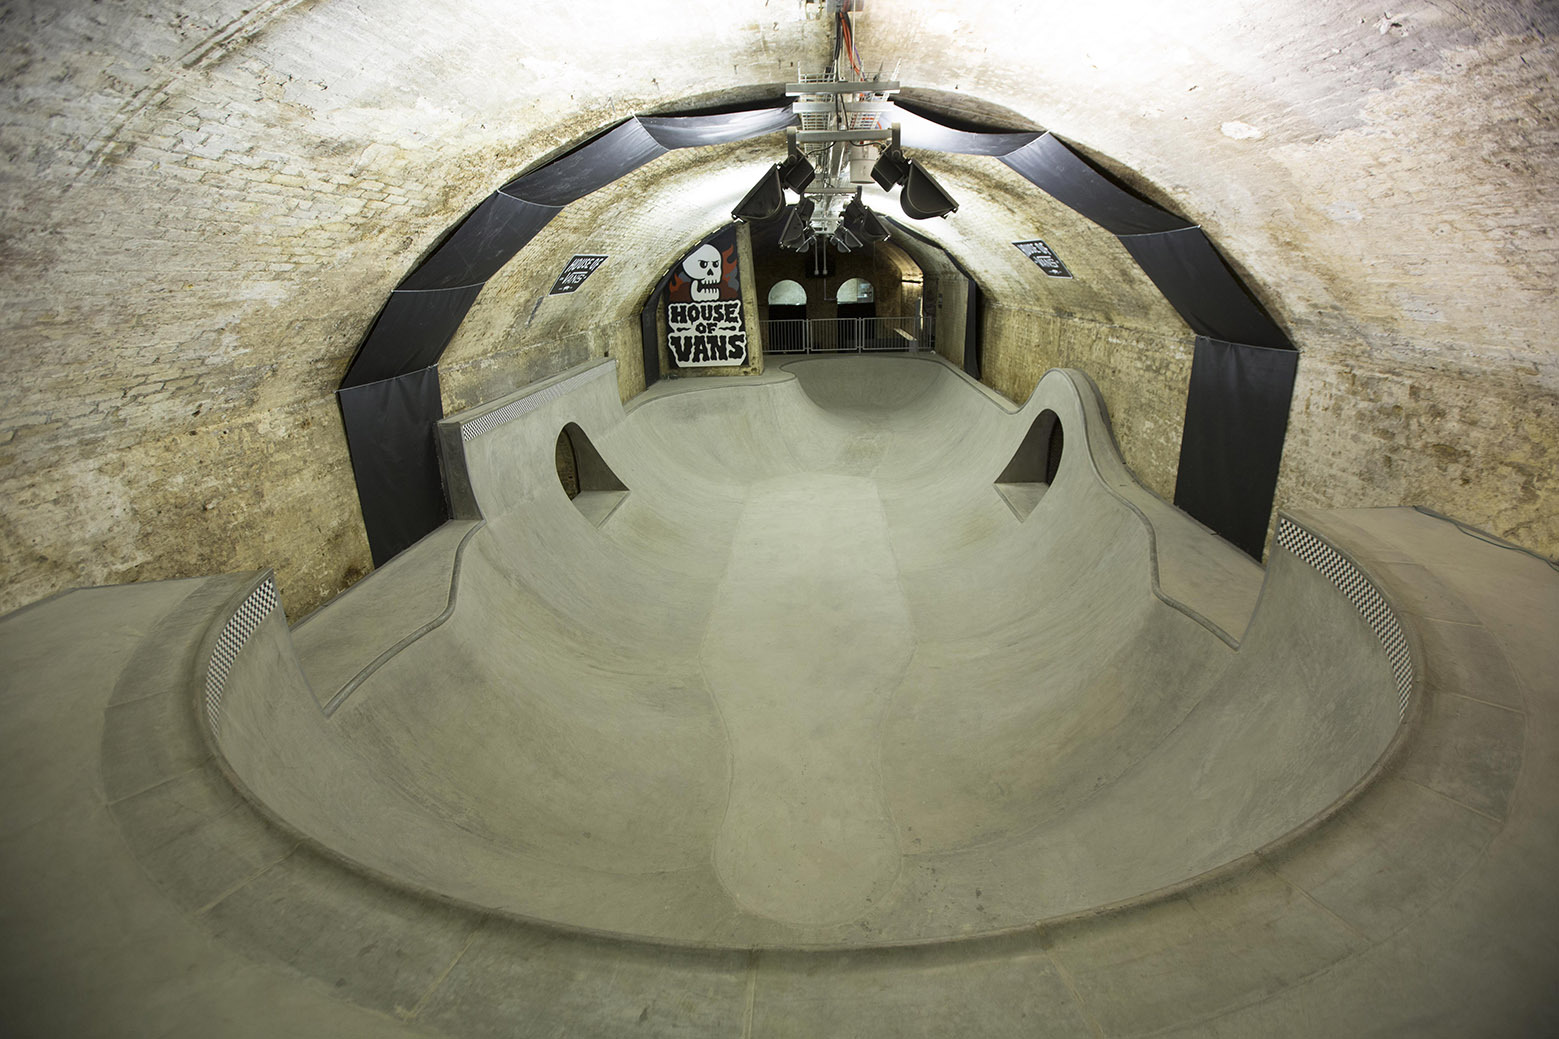 54b06746e58ece528e000054_house-of-vans-london-tim-greatrex_house_of_vans_london_skatepark_-5-